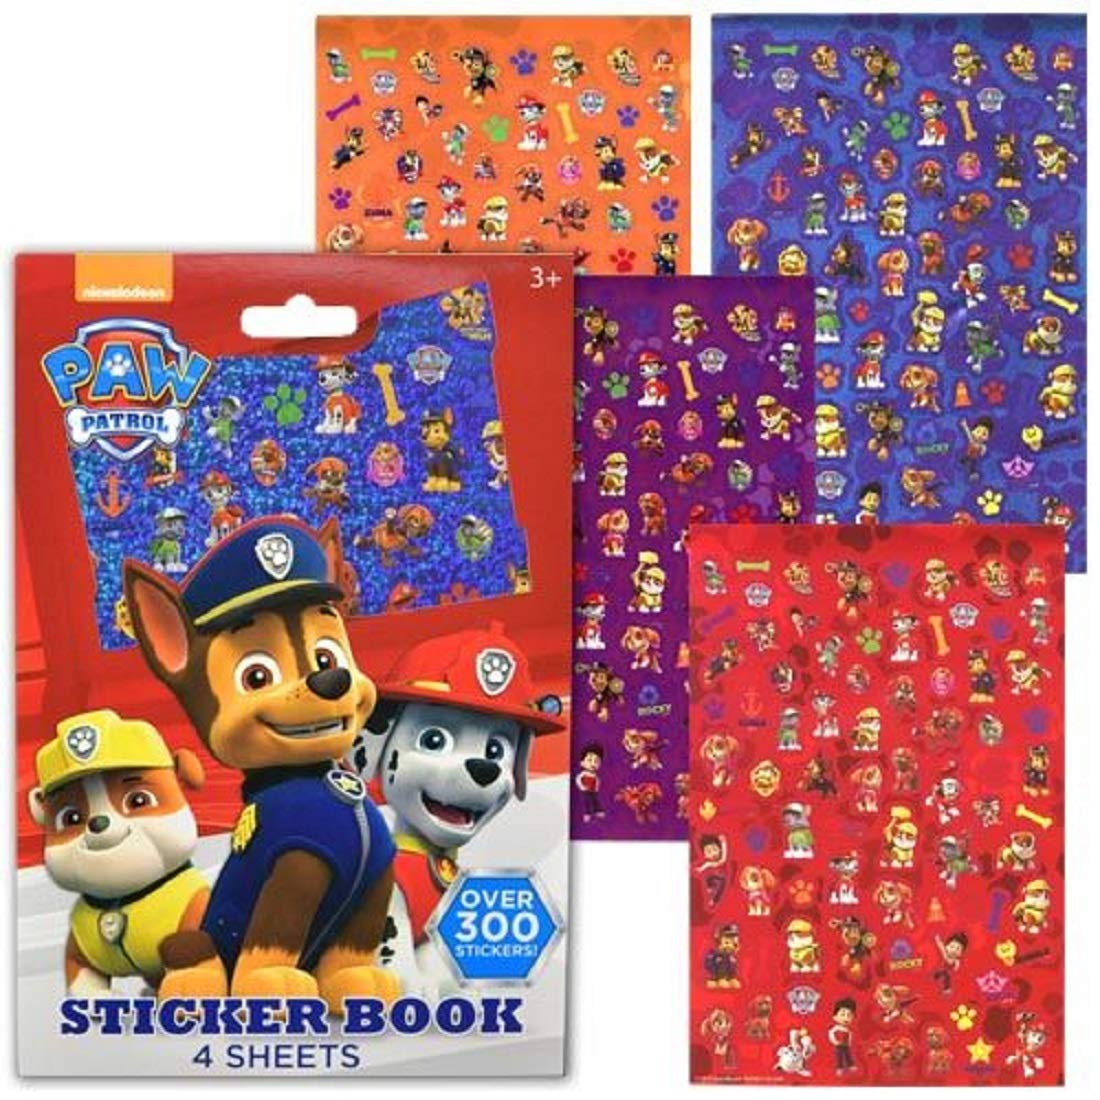 UPD Paw Patrol Sticker Book, 4 Sheets - Over 300 Stickers